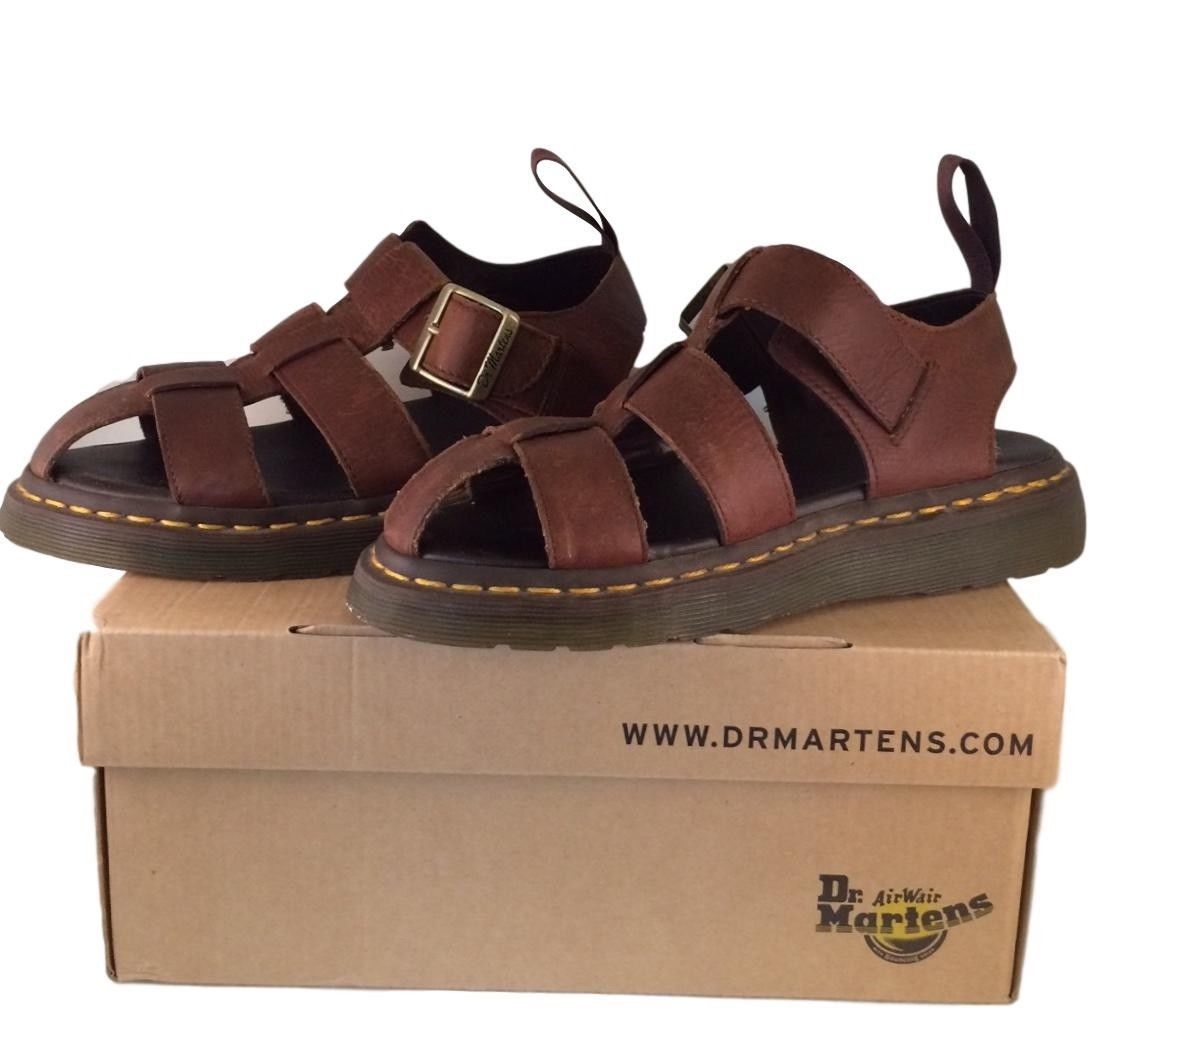 ddc7a5627dc4 32. 32. Previous. Doc Martens AirWair Men s Tan Fisherman Sandals - Leather  - Size 7 US with Box